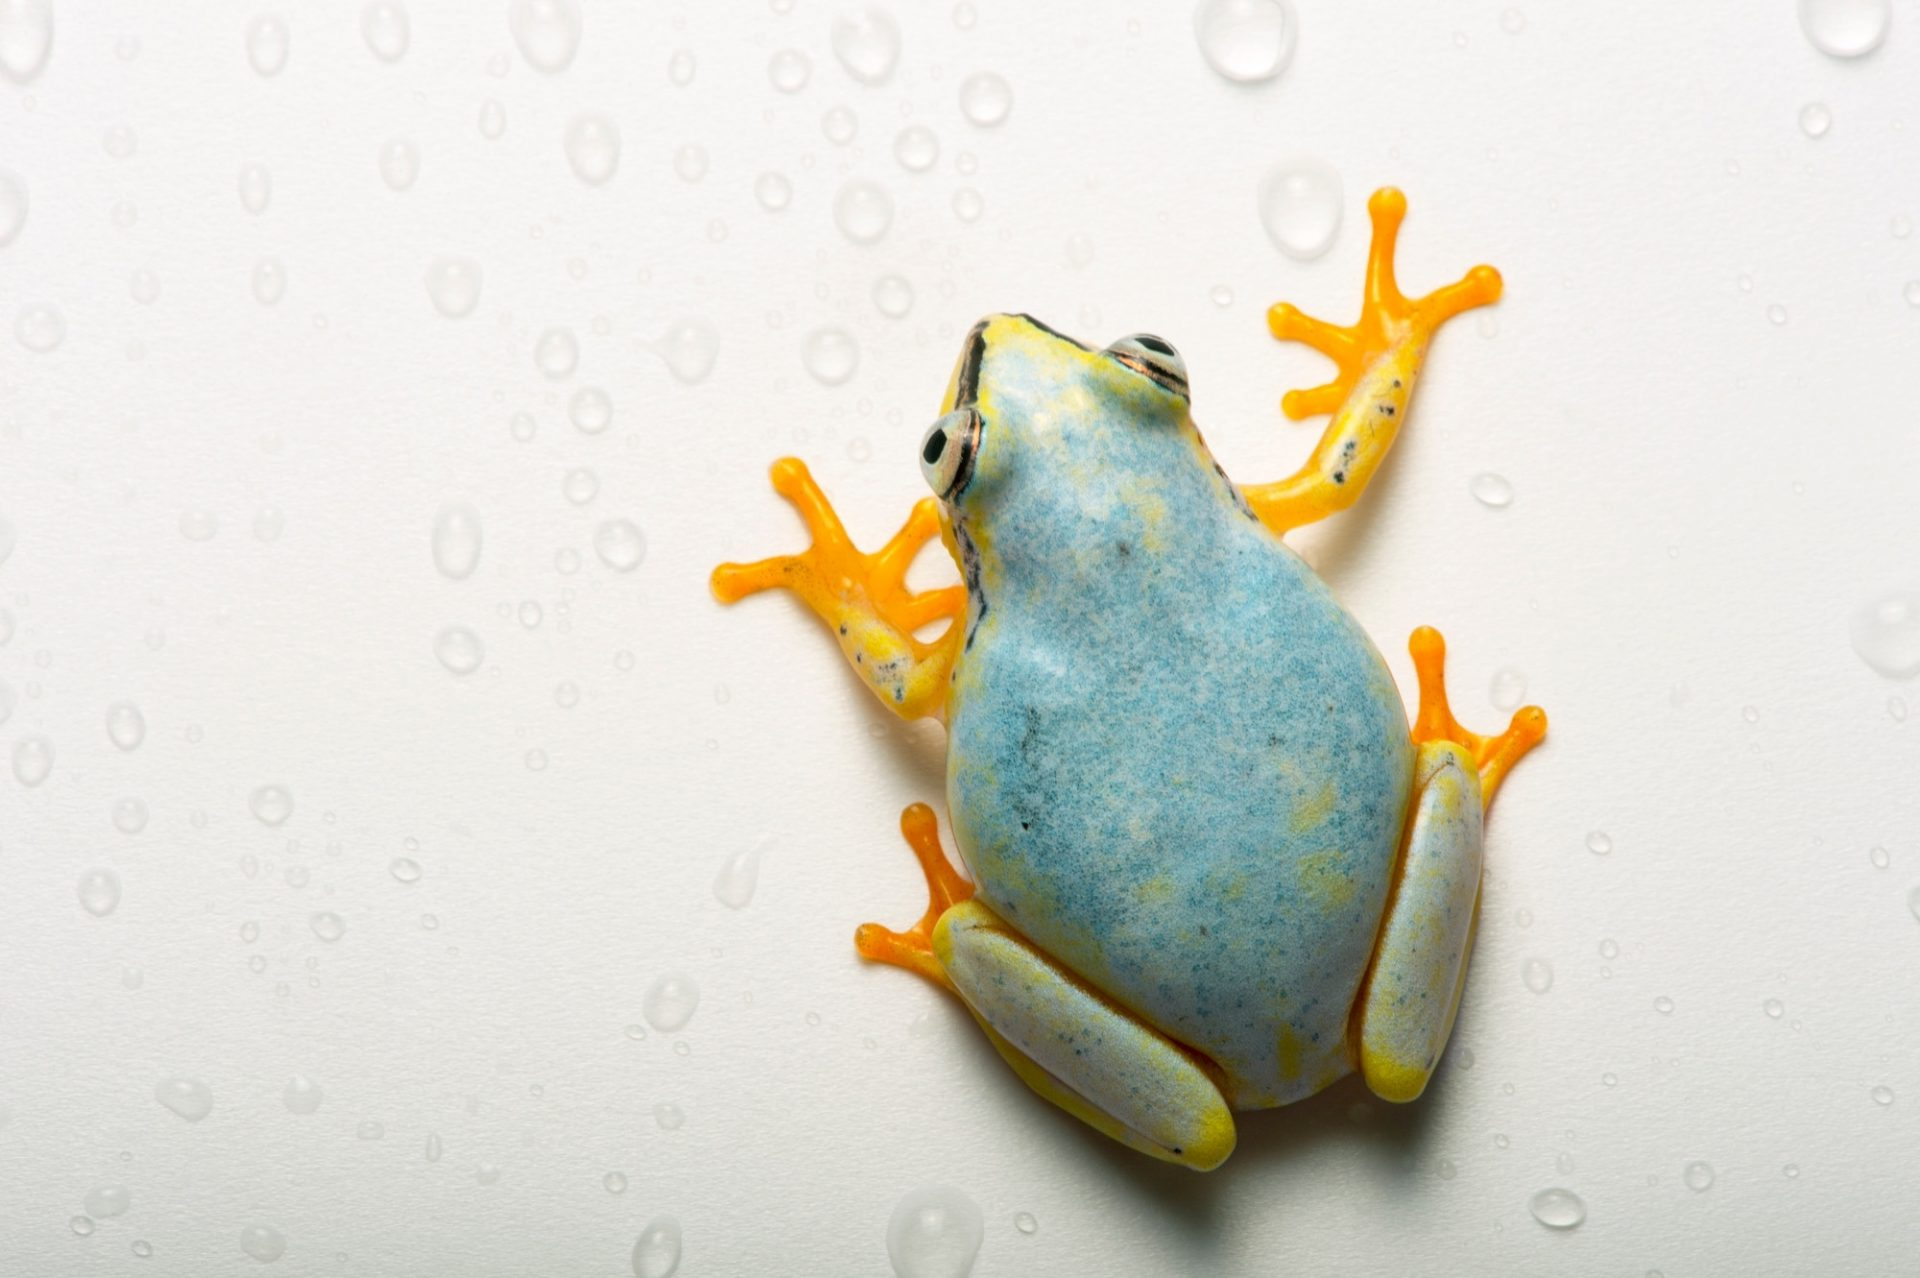 A Madagascar reed frog ( Heterixalus madagascariensis) from the Plzen Zoo in the Czech Republic.